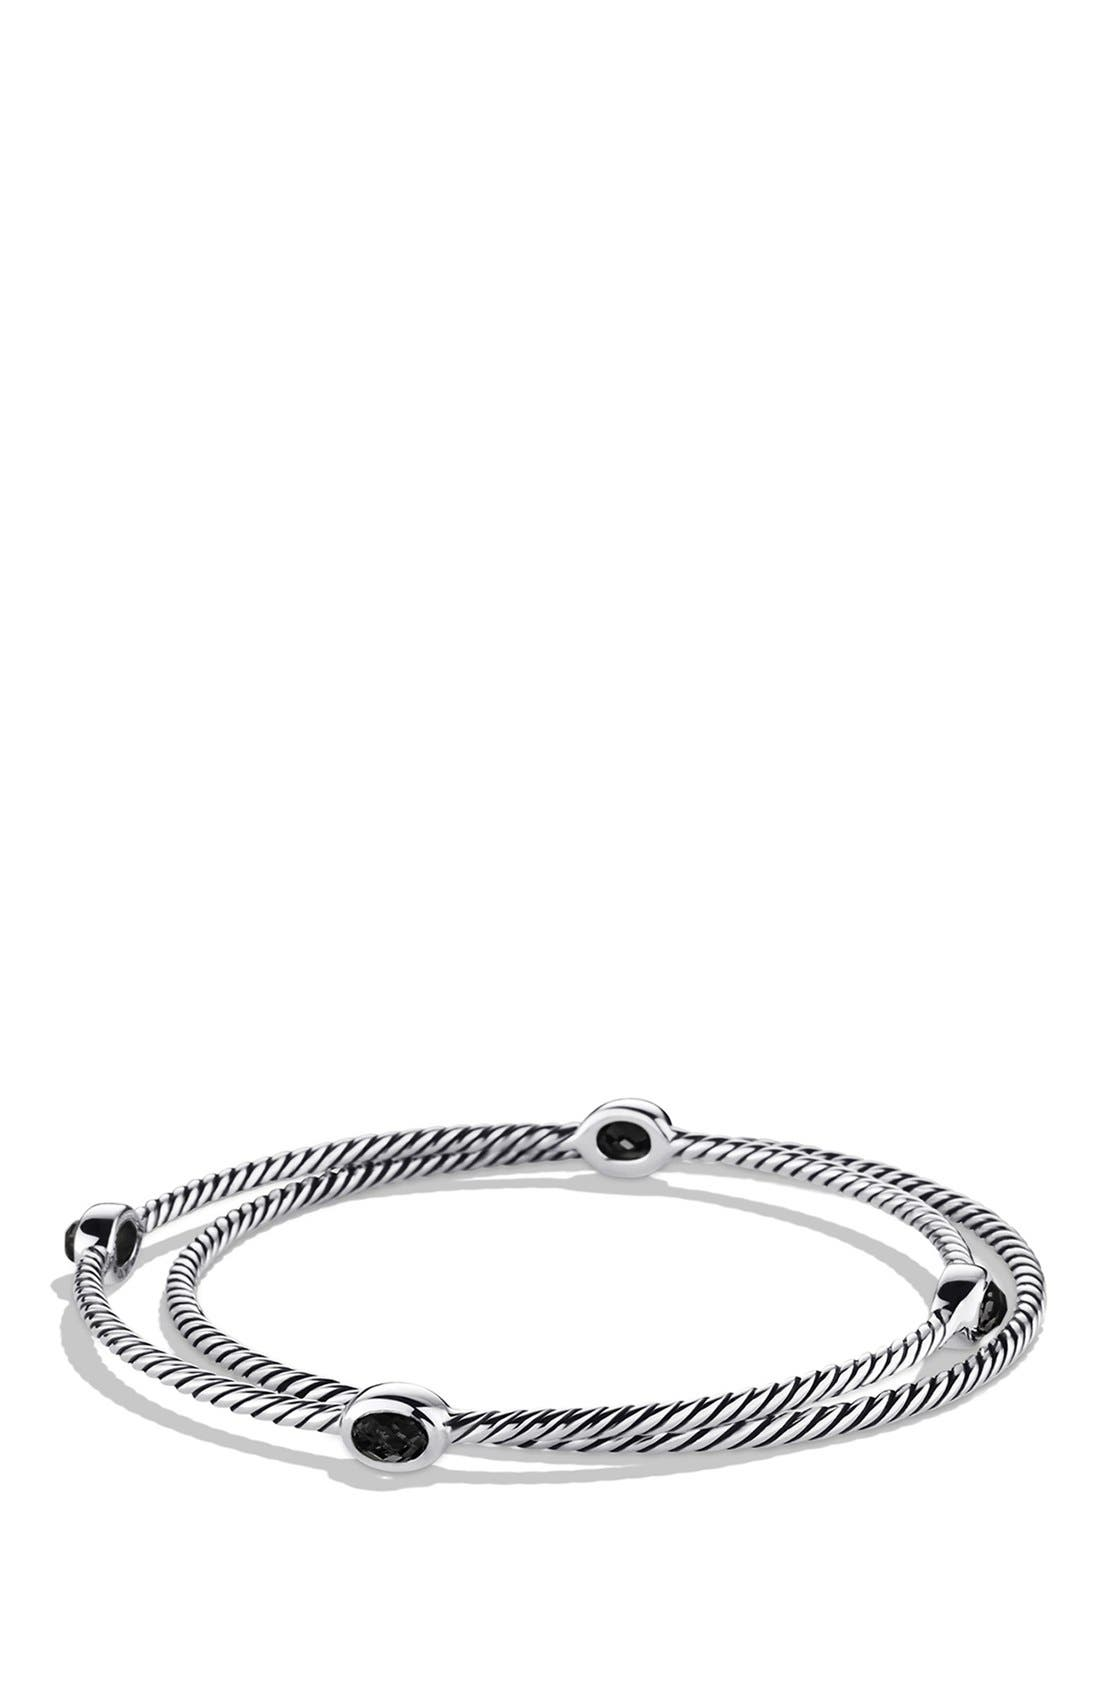 David Yurman 'Color Classics' Set of 2 Bangles with Semiprecious Stones